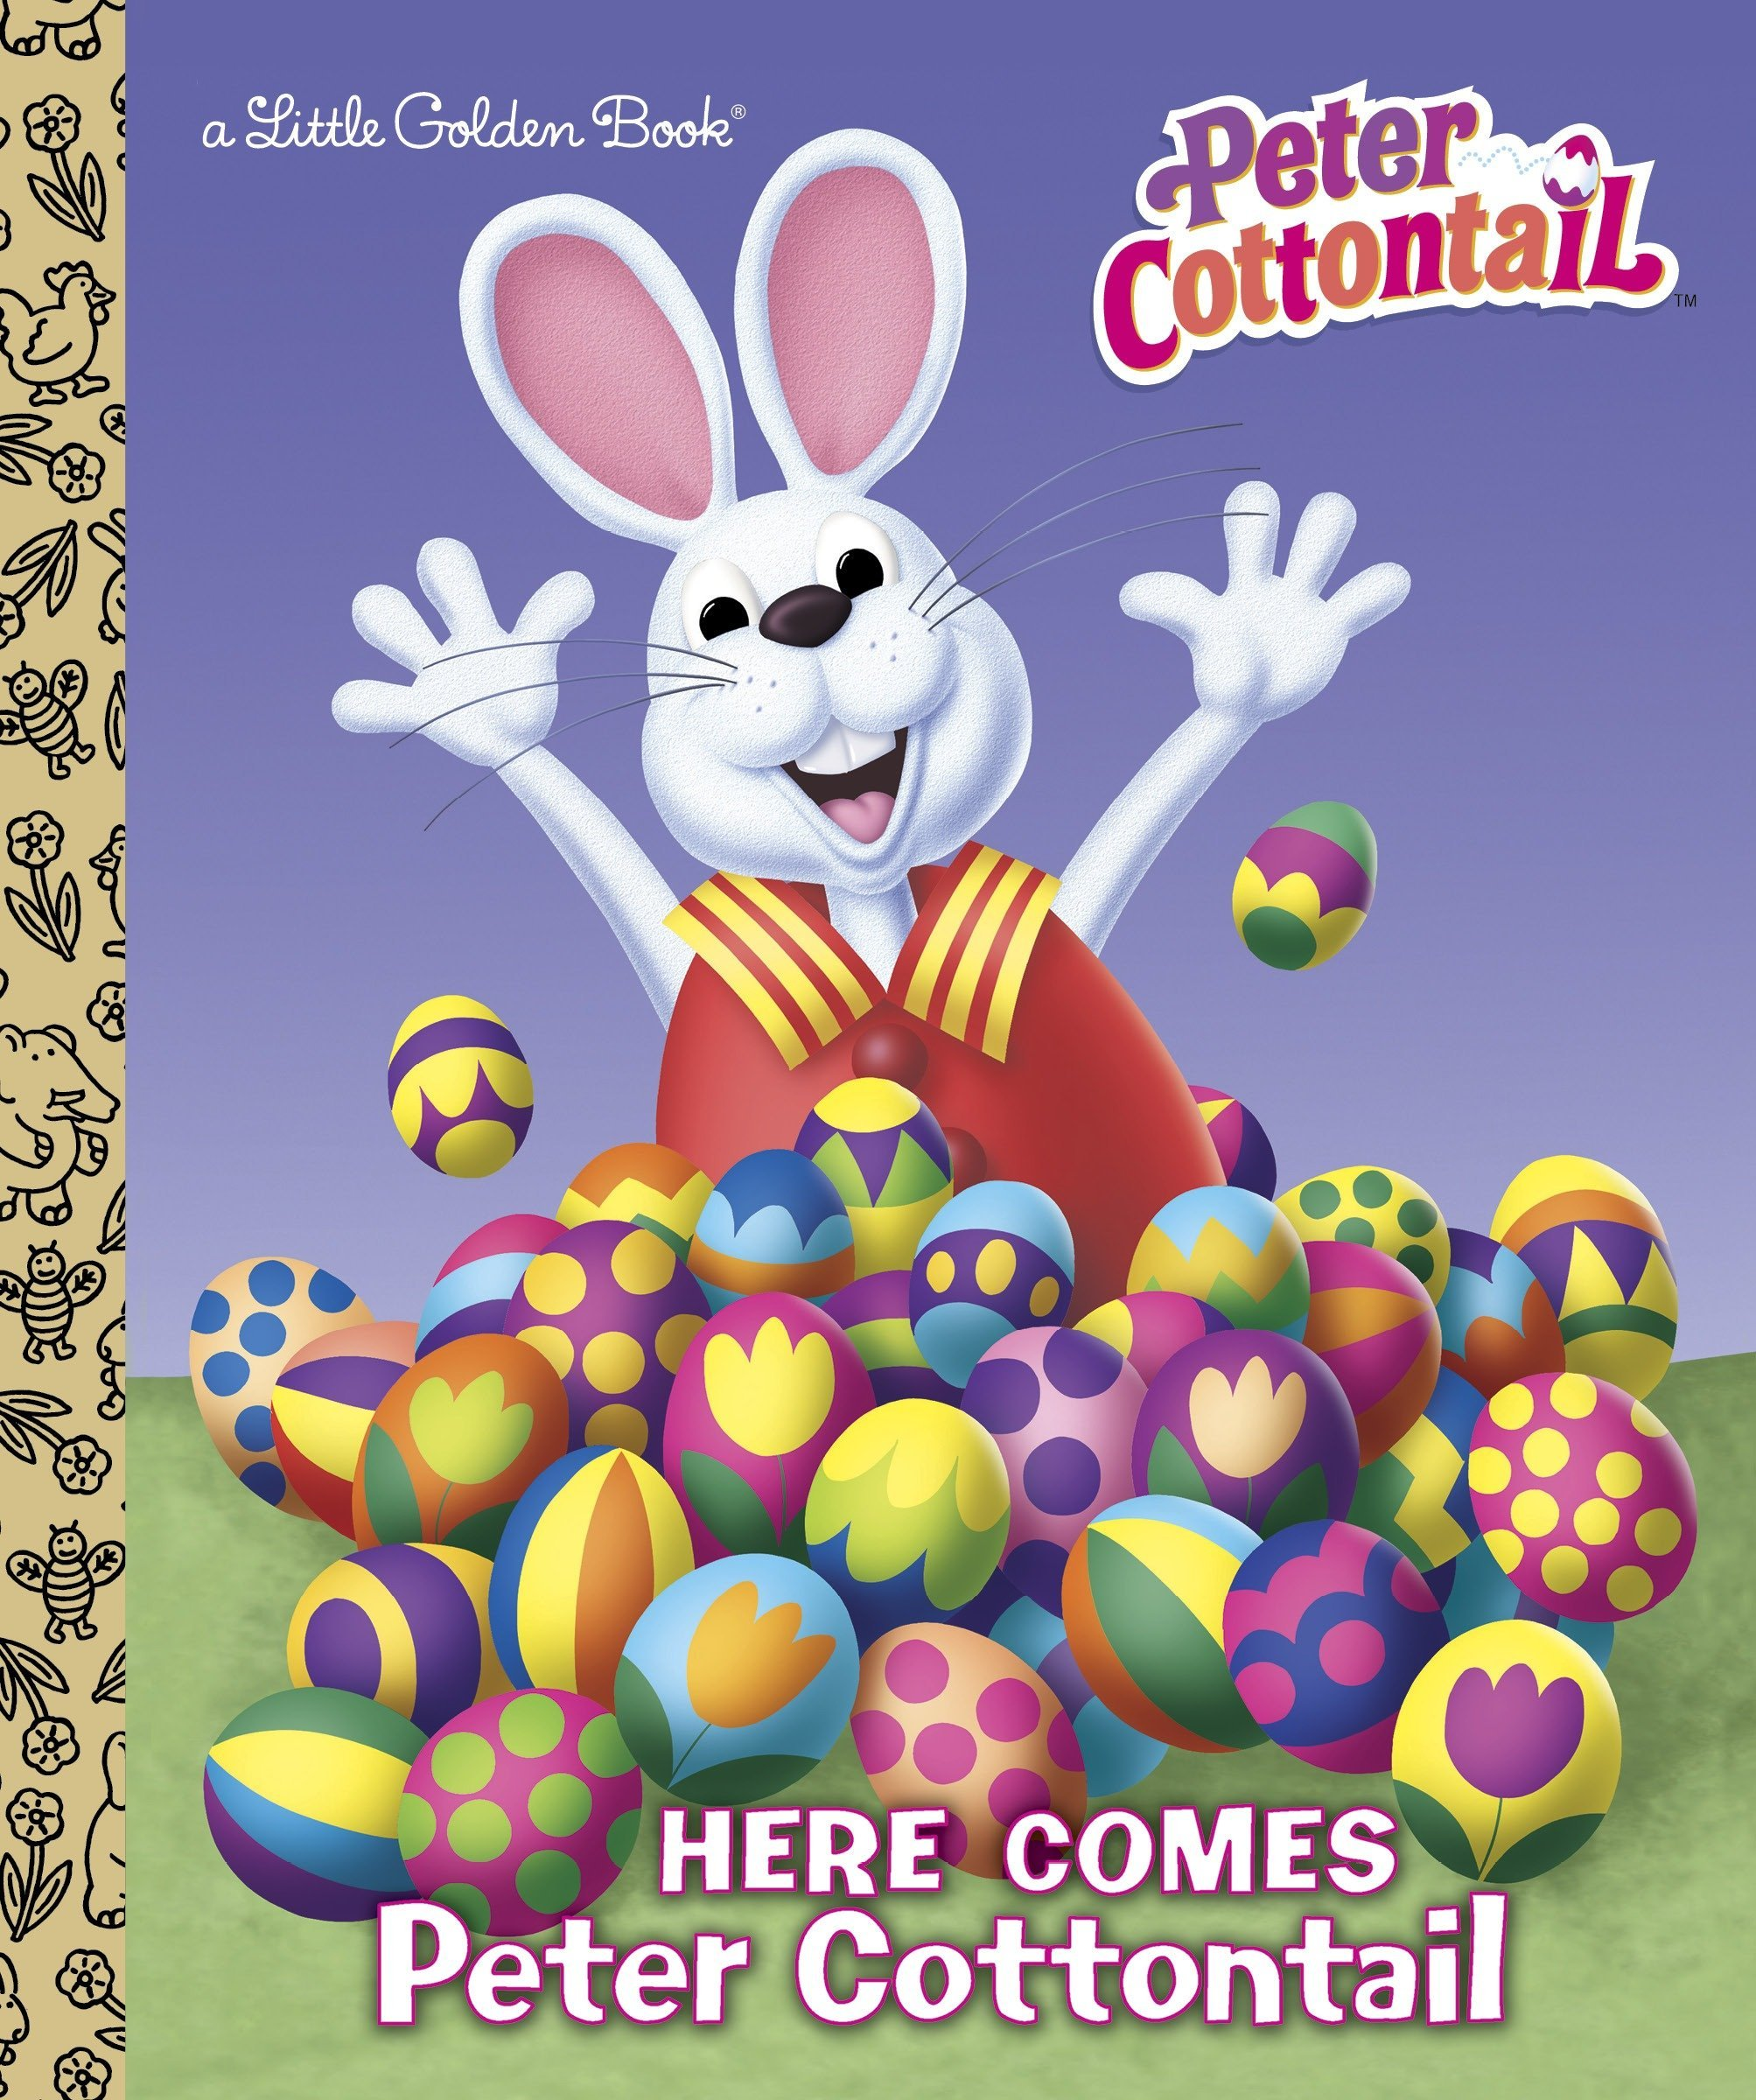 Download Here Comes Peter Cottontail Little Golden Book (Peter Cottontail) ebook